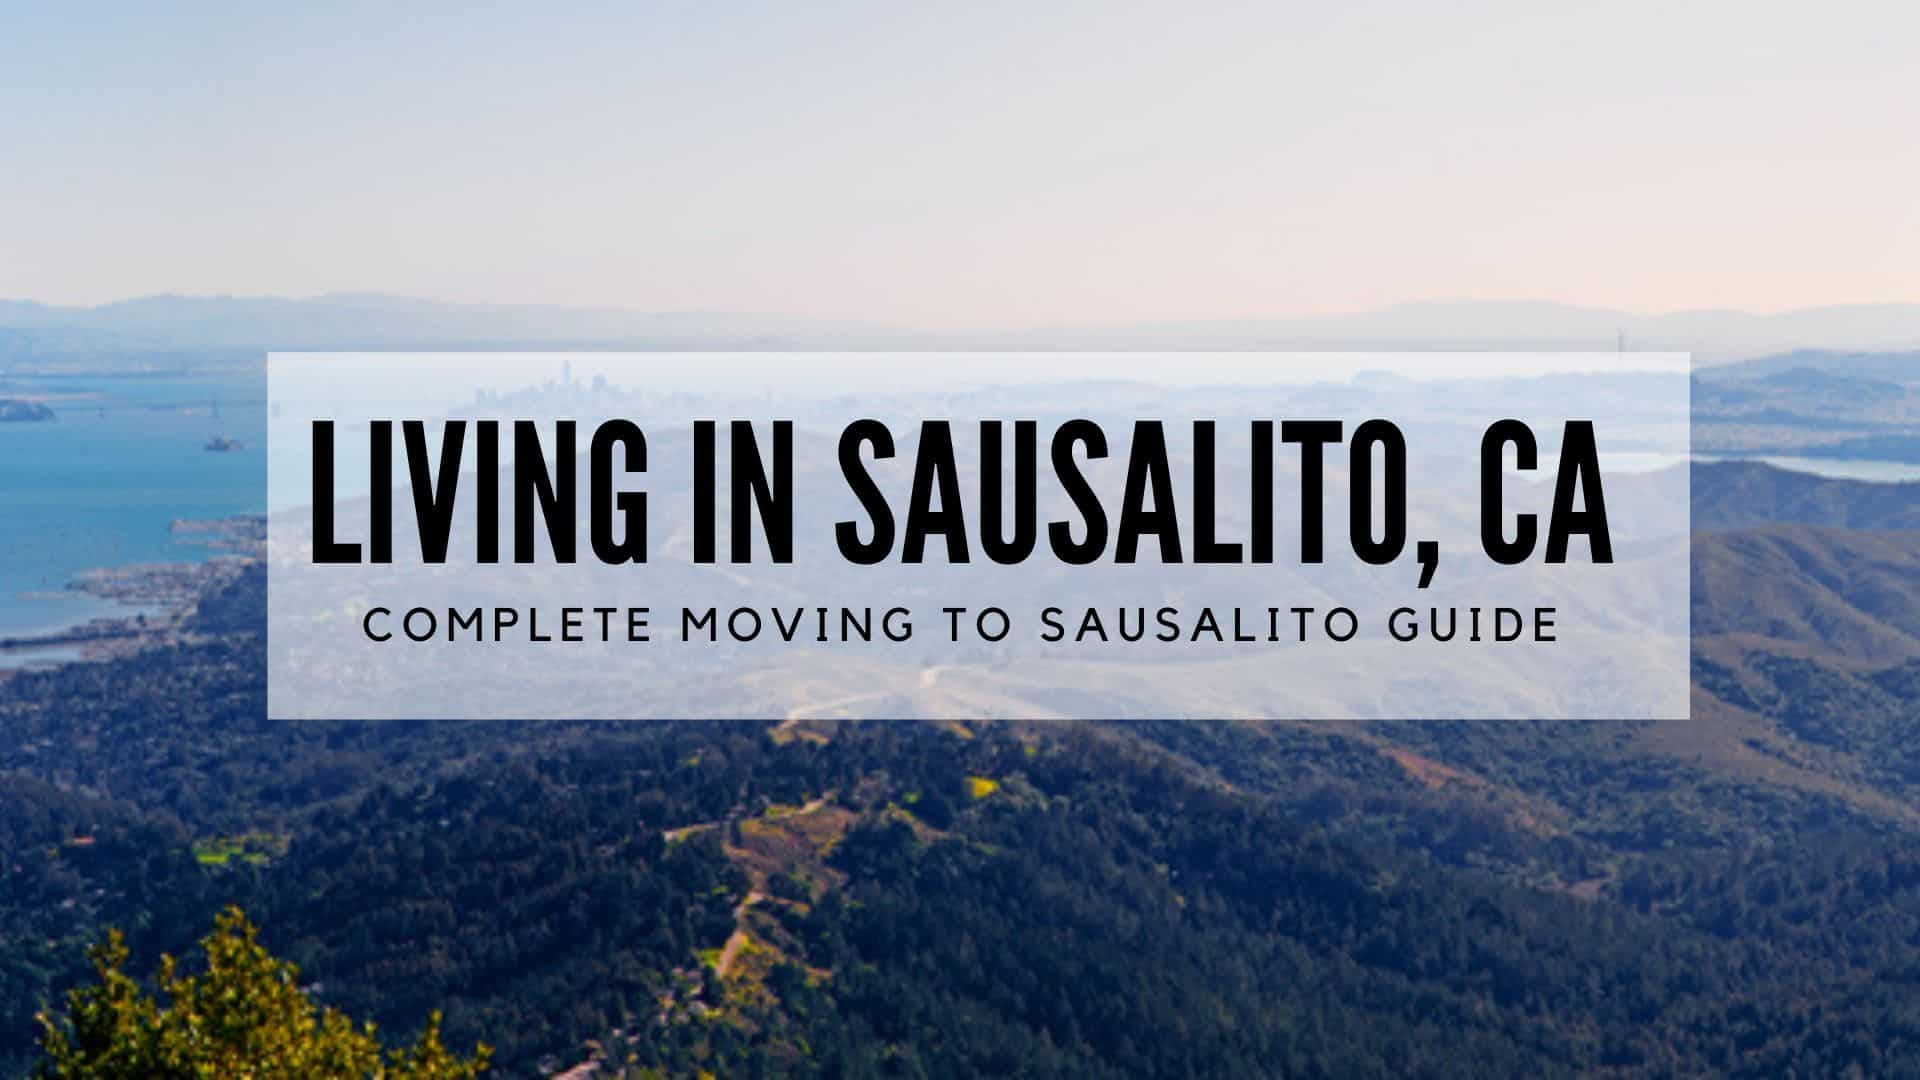 Living in Sausalito, CA